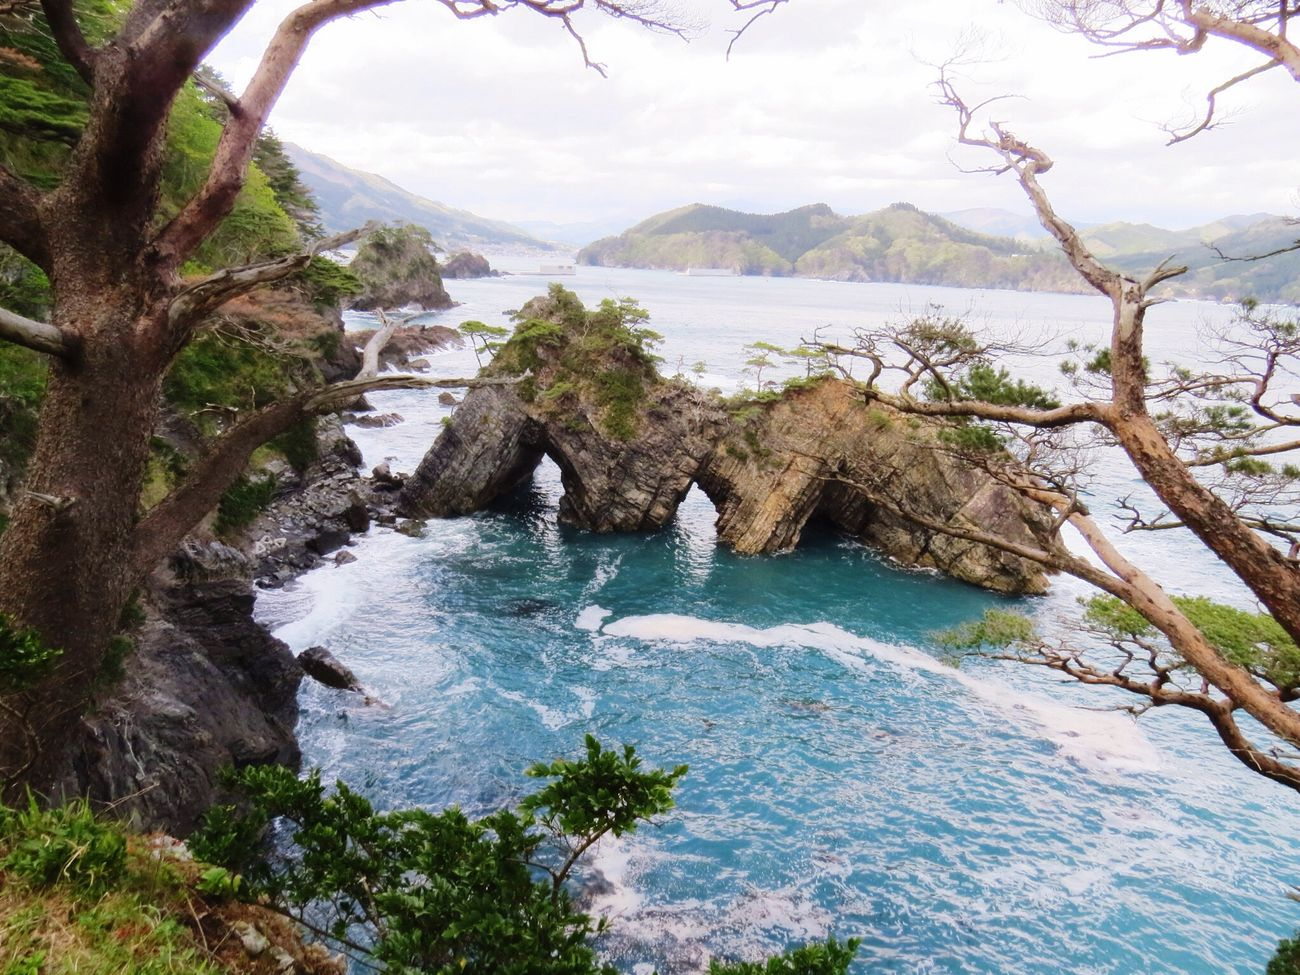 Travel Photography Travel Destinations Japan Iwate Oofunato 大船渡 碁石海岸 Goisi-Kaigsn(coast) Beauty In Nature Nature Seaside Sea Tranquil Scene Crag Rock 穴通磯(ANA TOSHI ISO)。